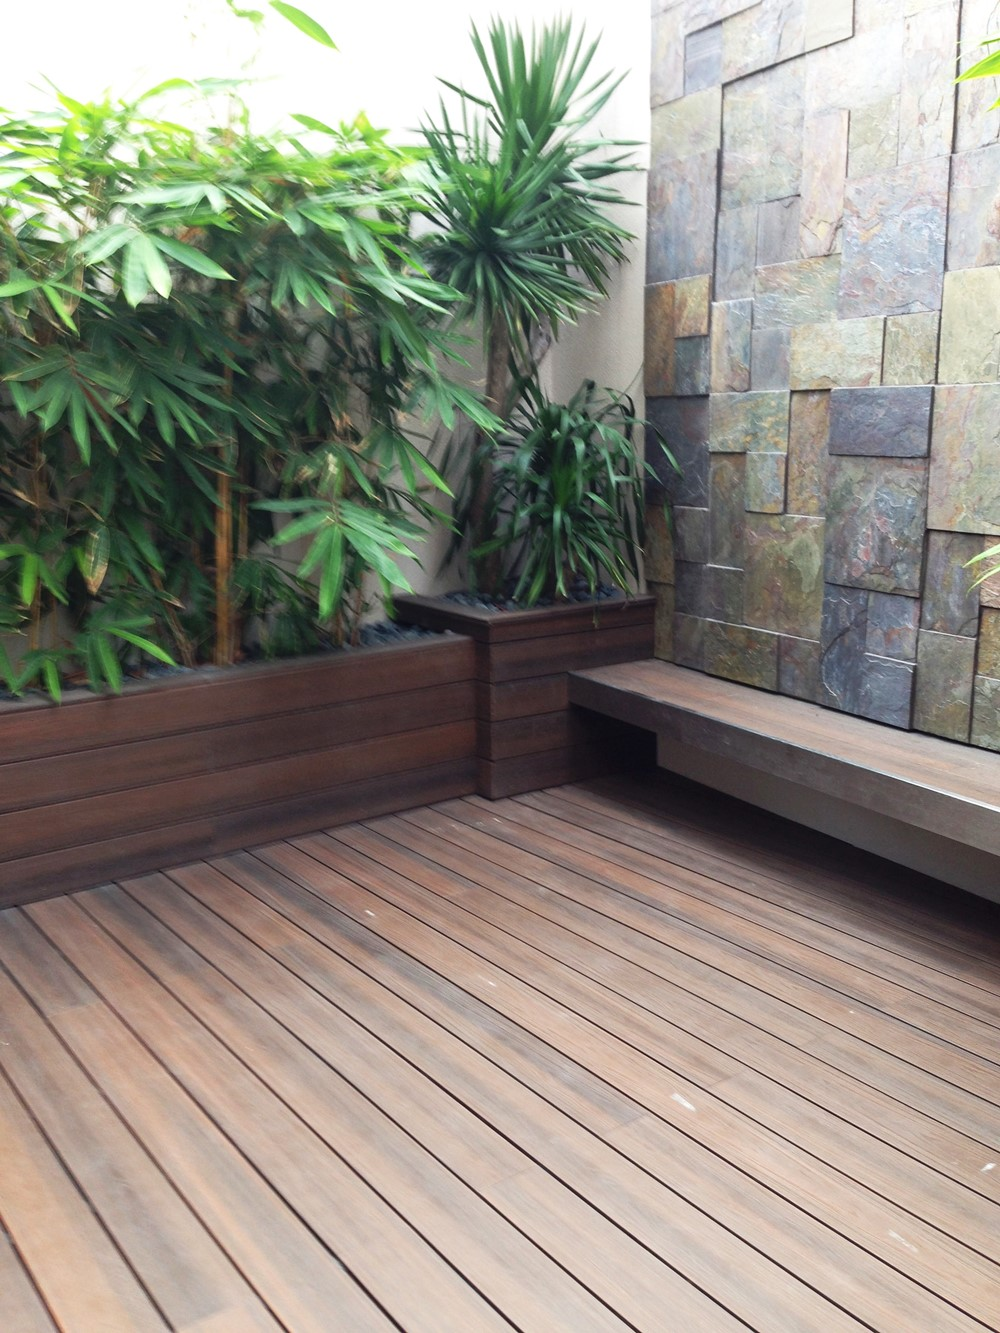 Enduro Decking supplied by Enduro Philippines